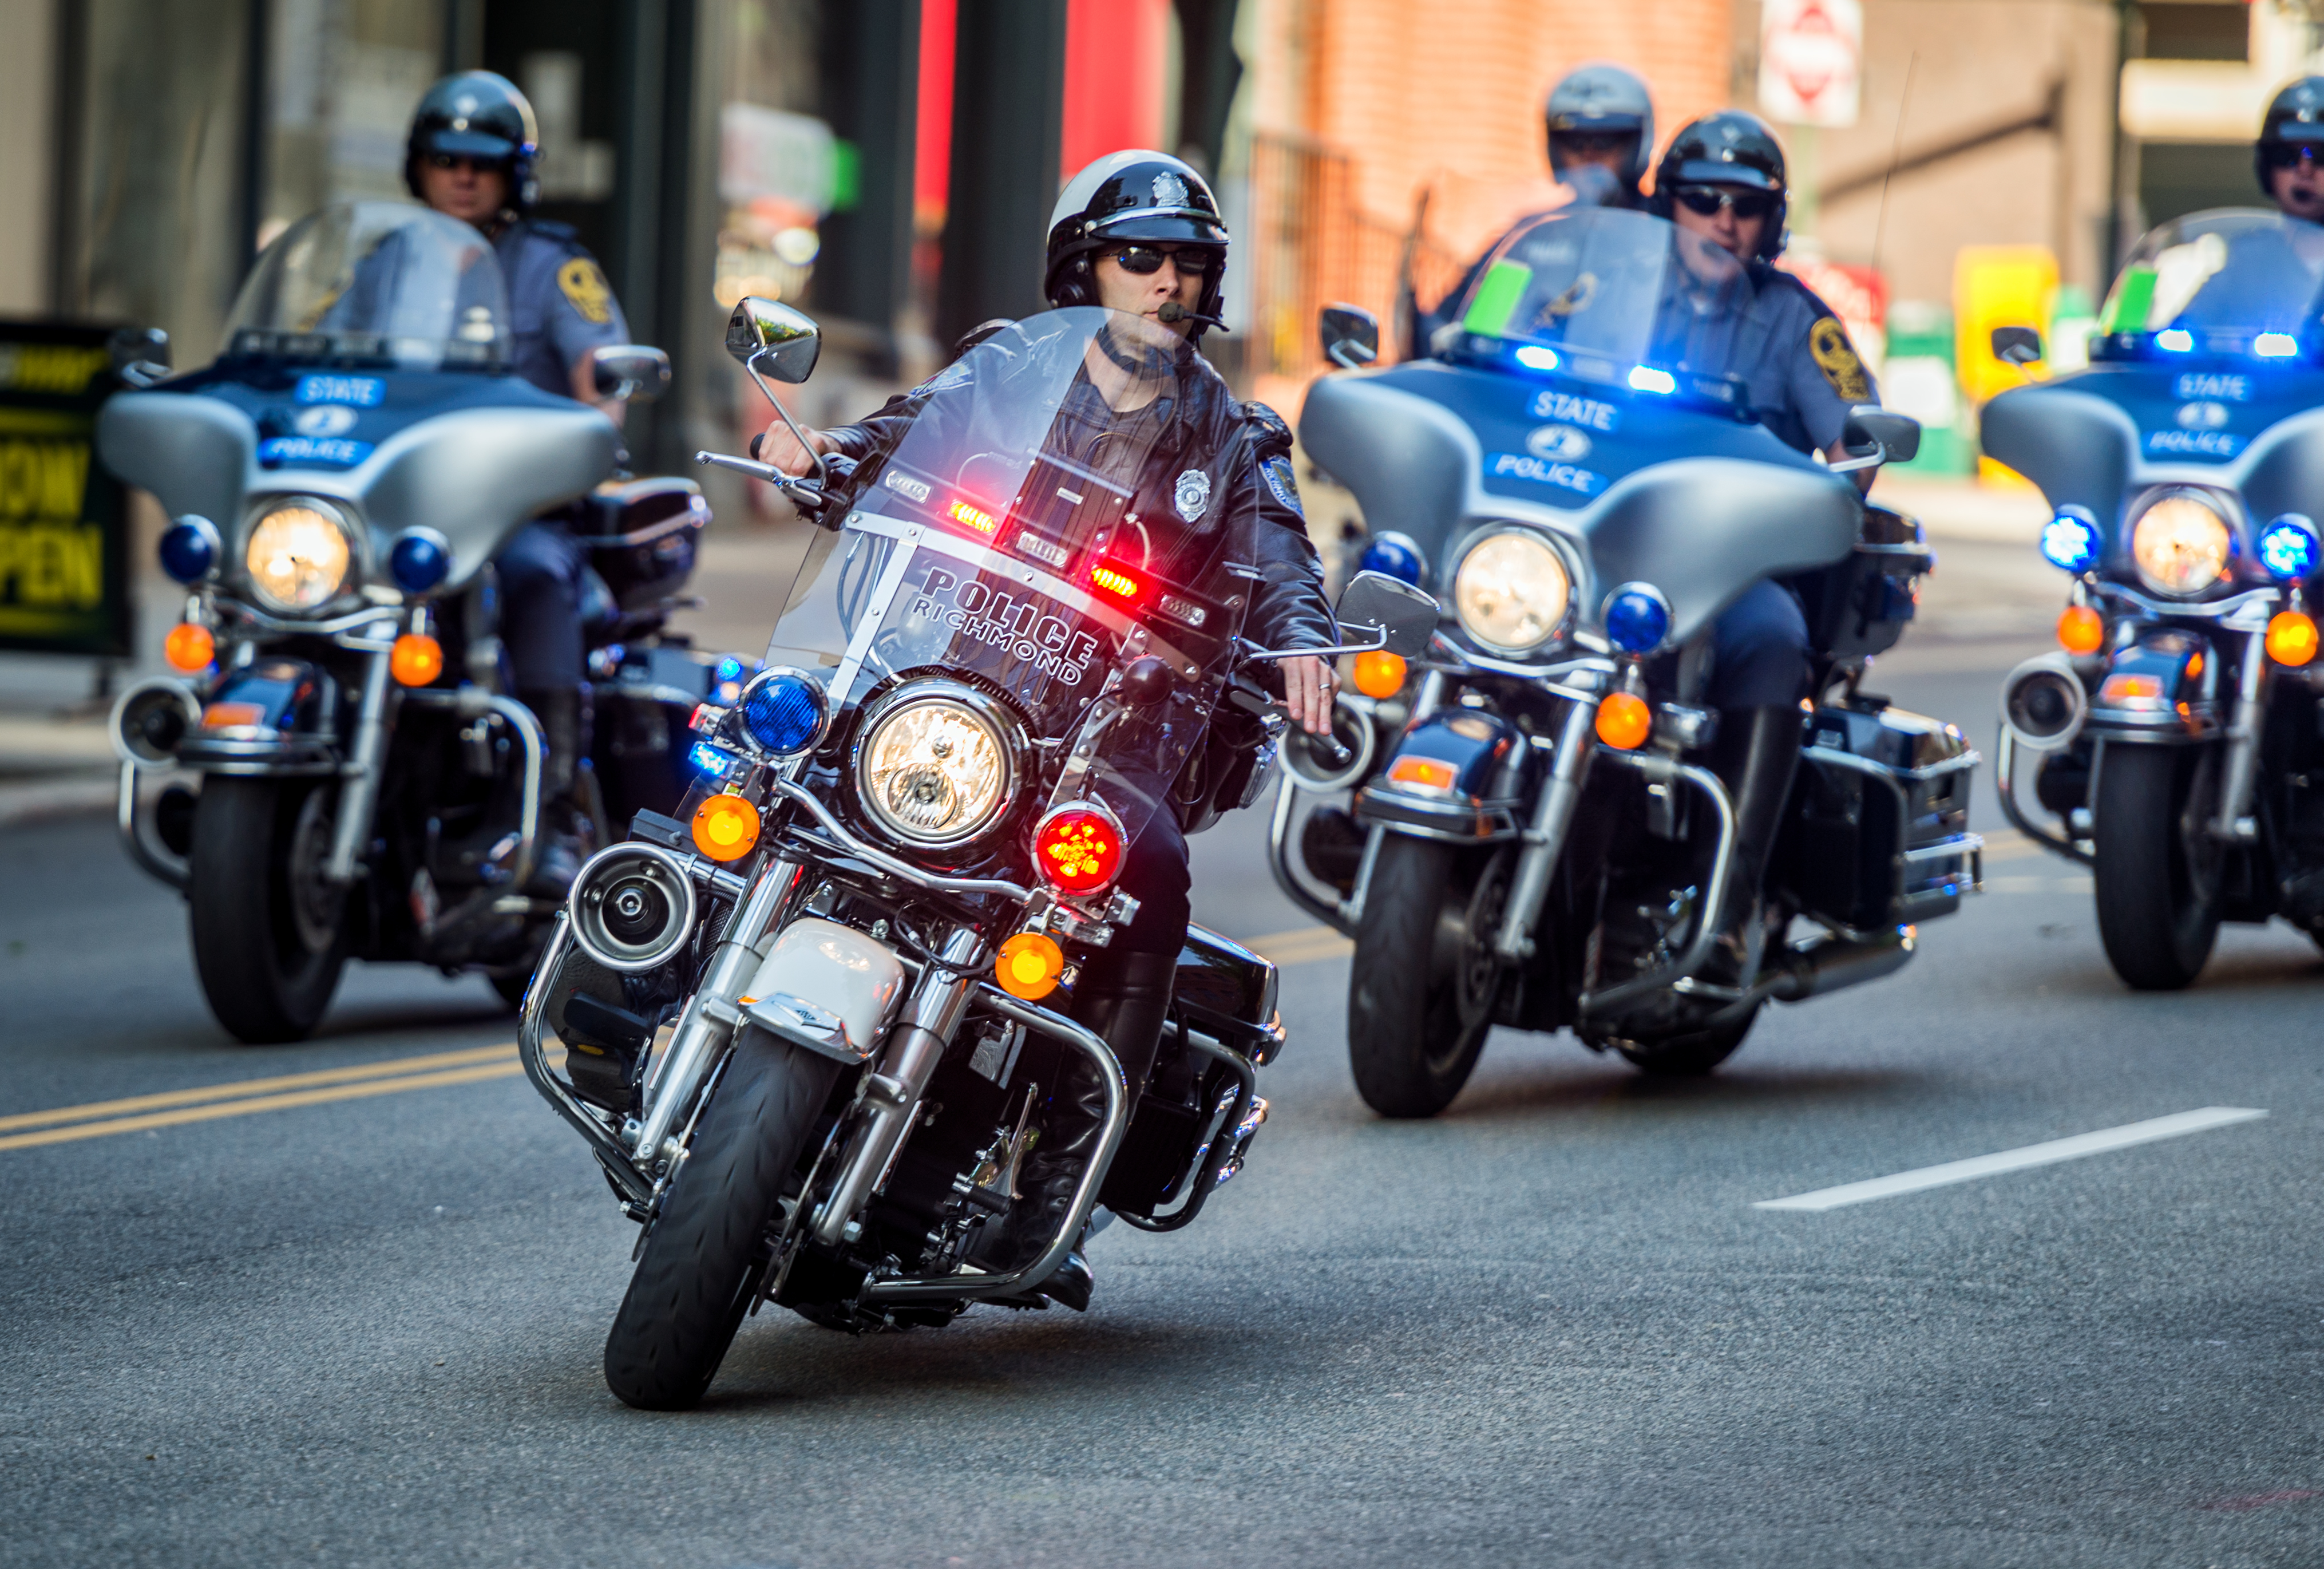 Police officers on motorcycles with flashing lights